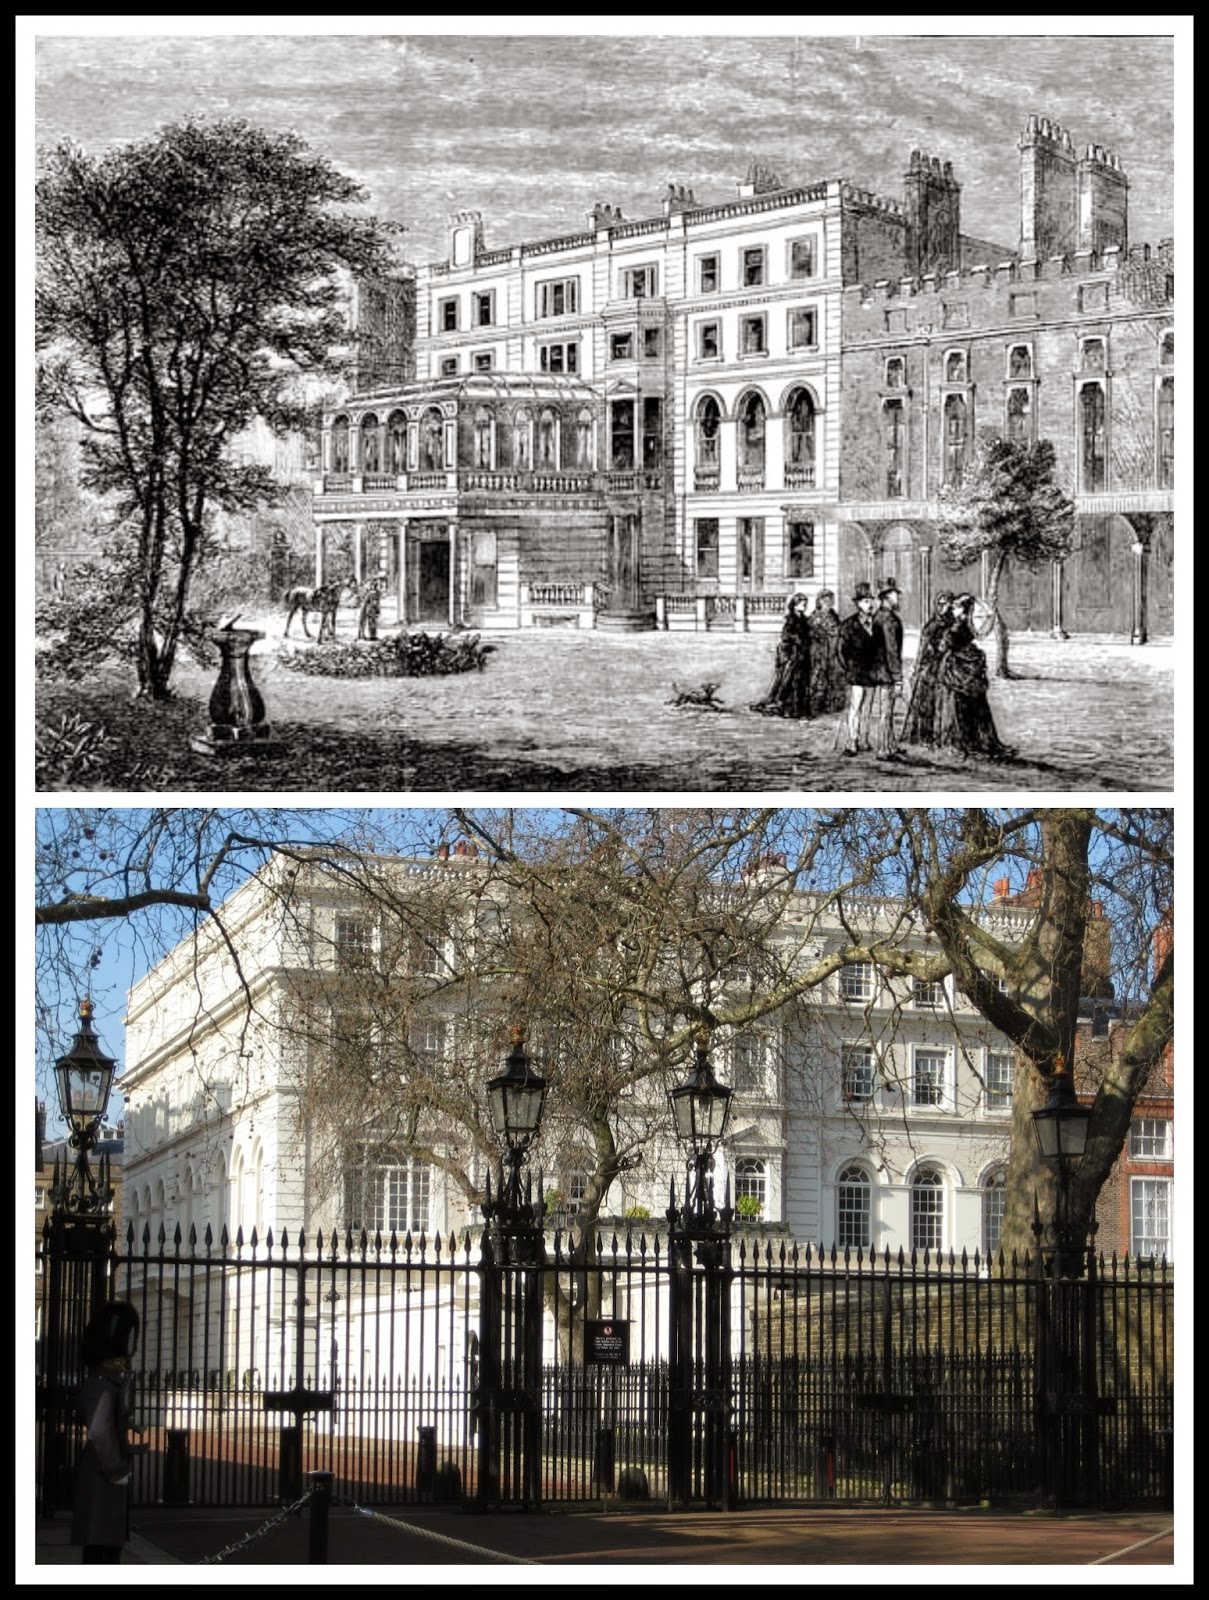 Top: Clarence House from The Graphic (Nov 1874)  Bottom: Clarence House today © Andrew Knowles